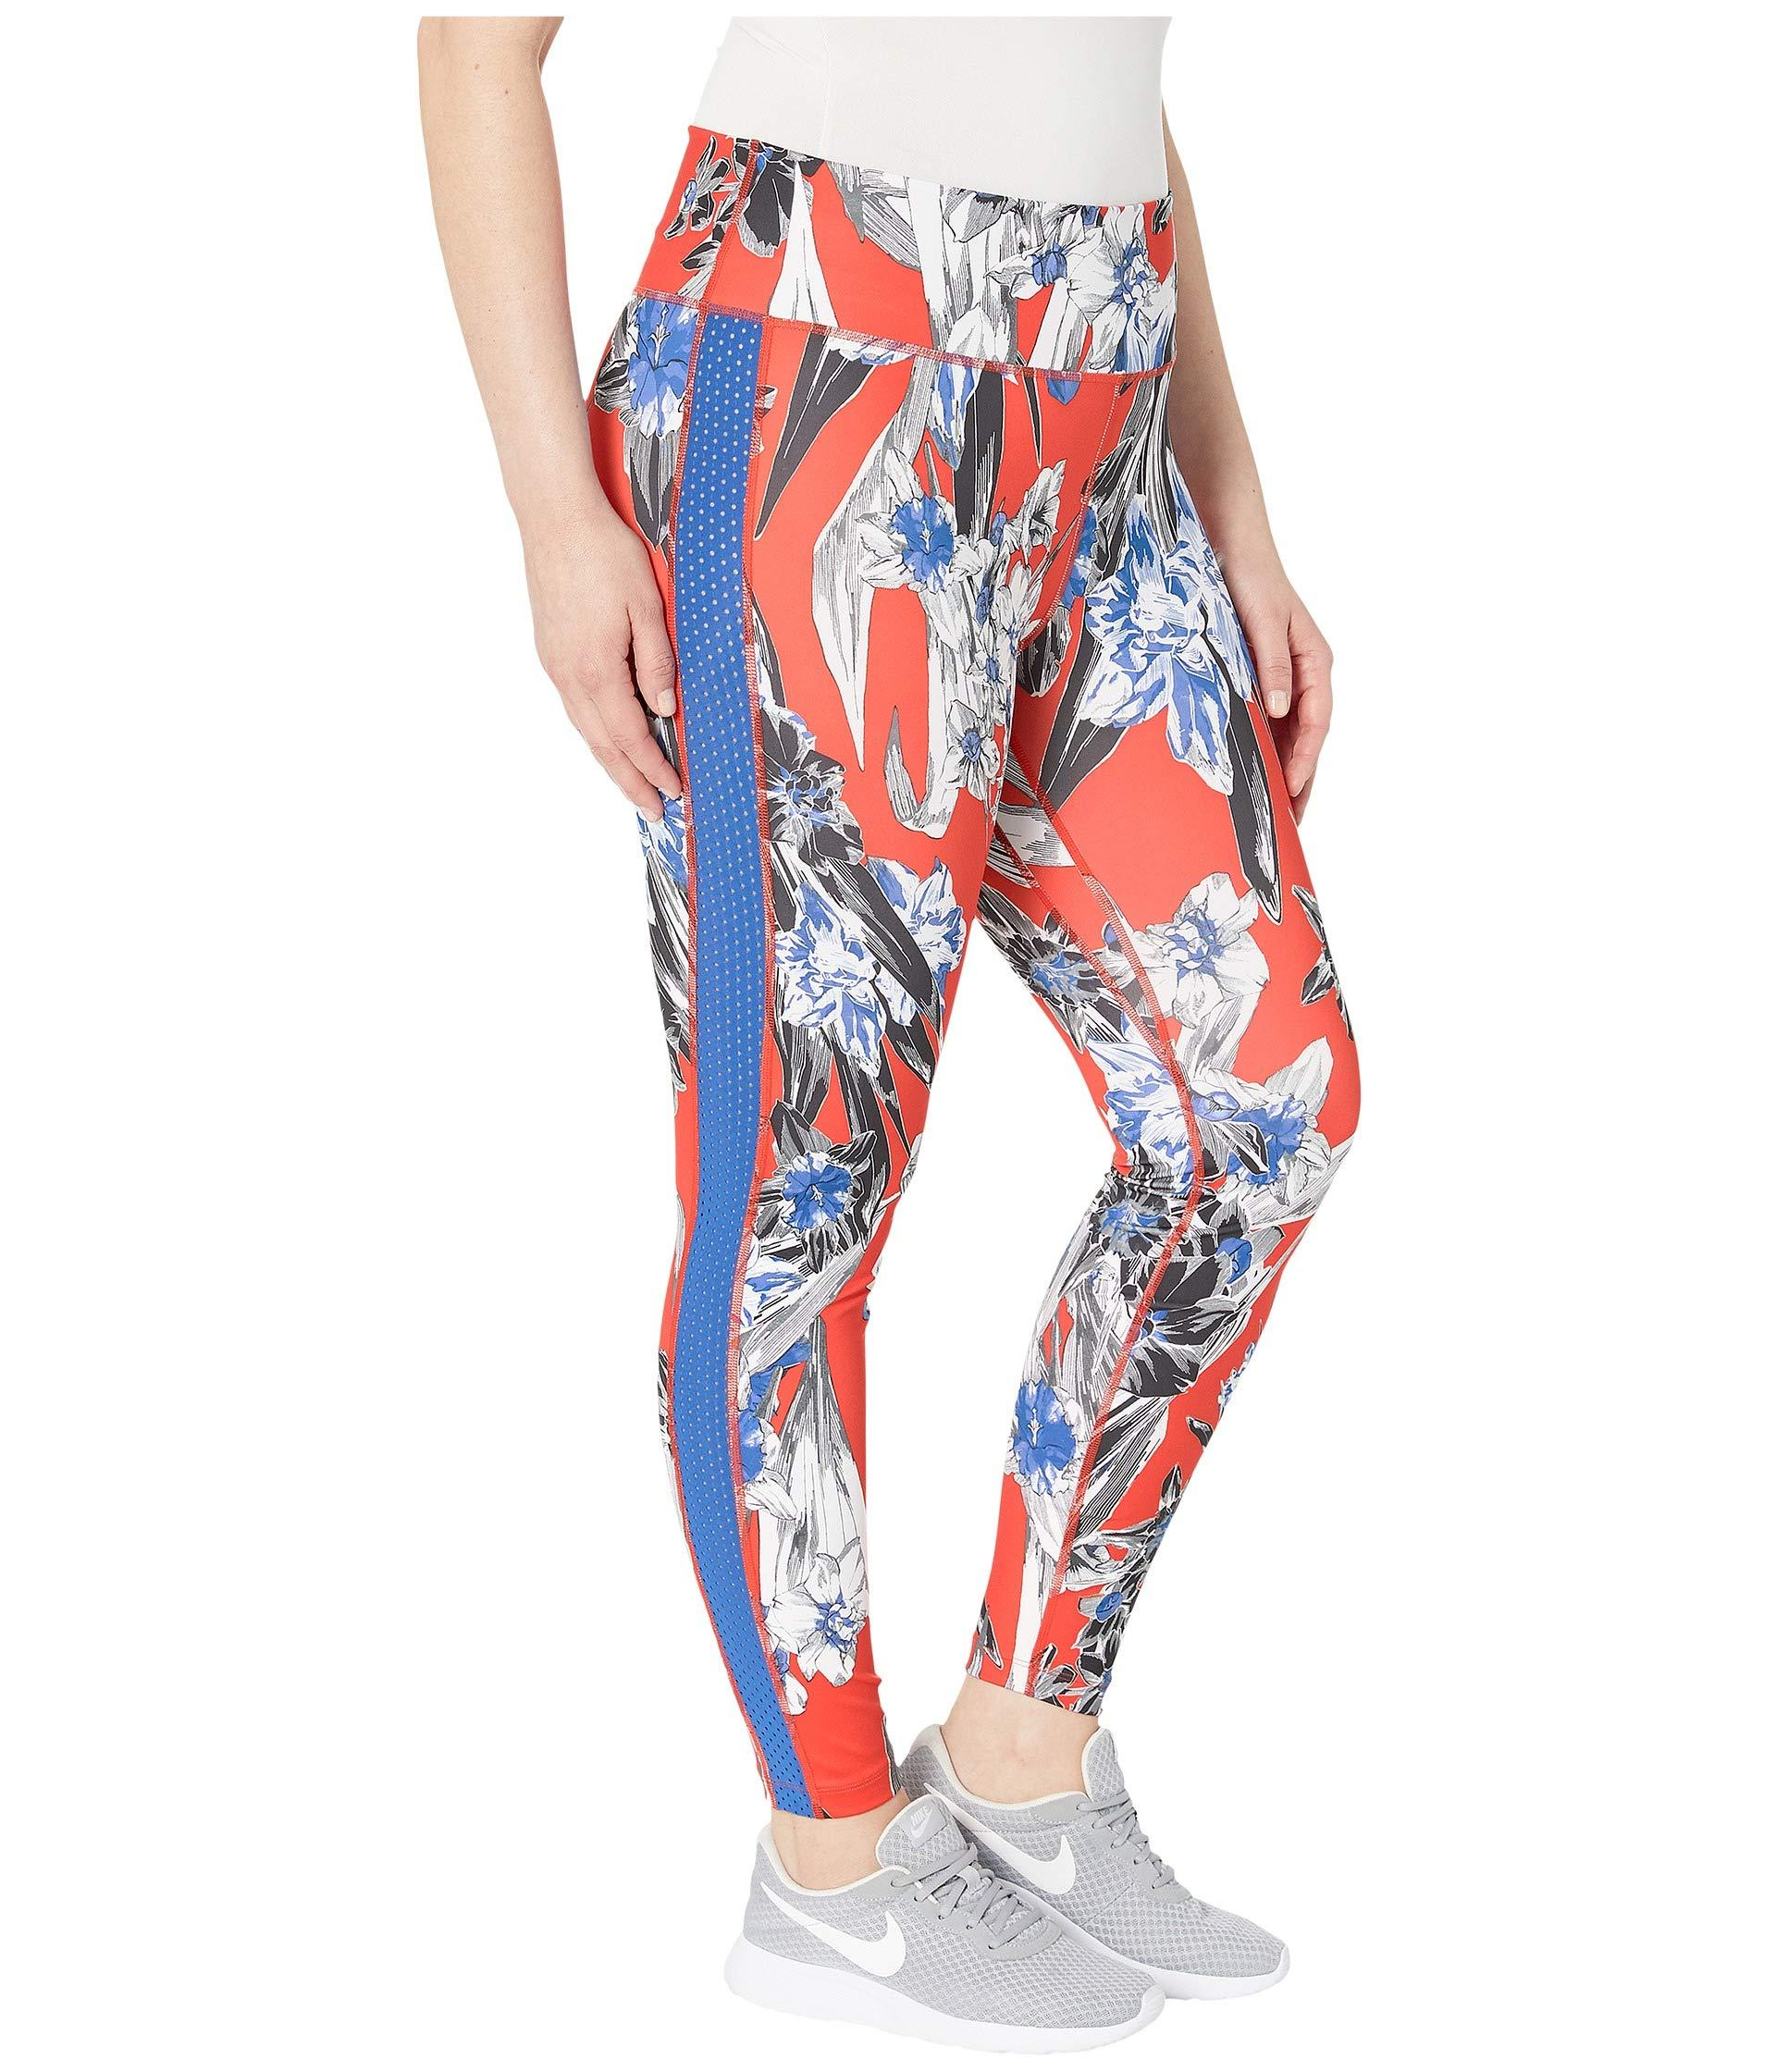 sale retailer 1030a e3db4 Lyst - Nike One Tights Hyper Femme (sizes 1x-3x) in Orange - Save 24%